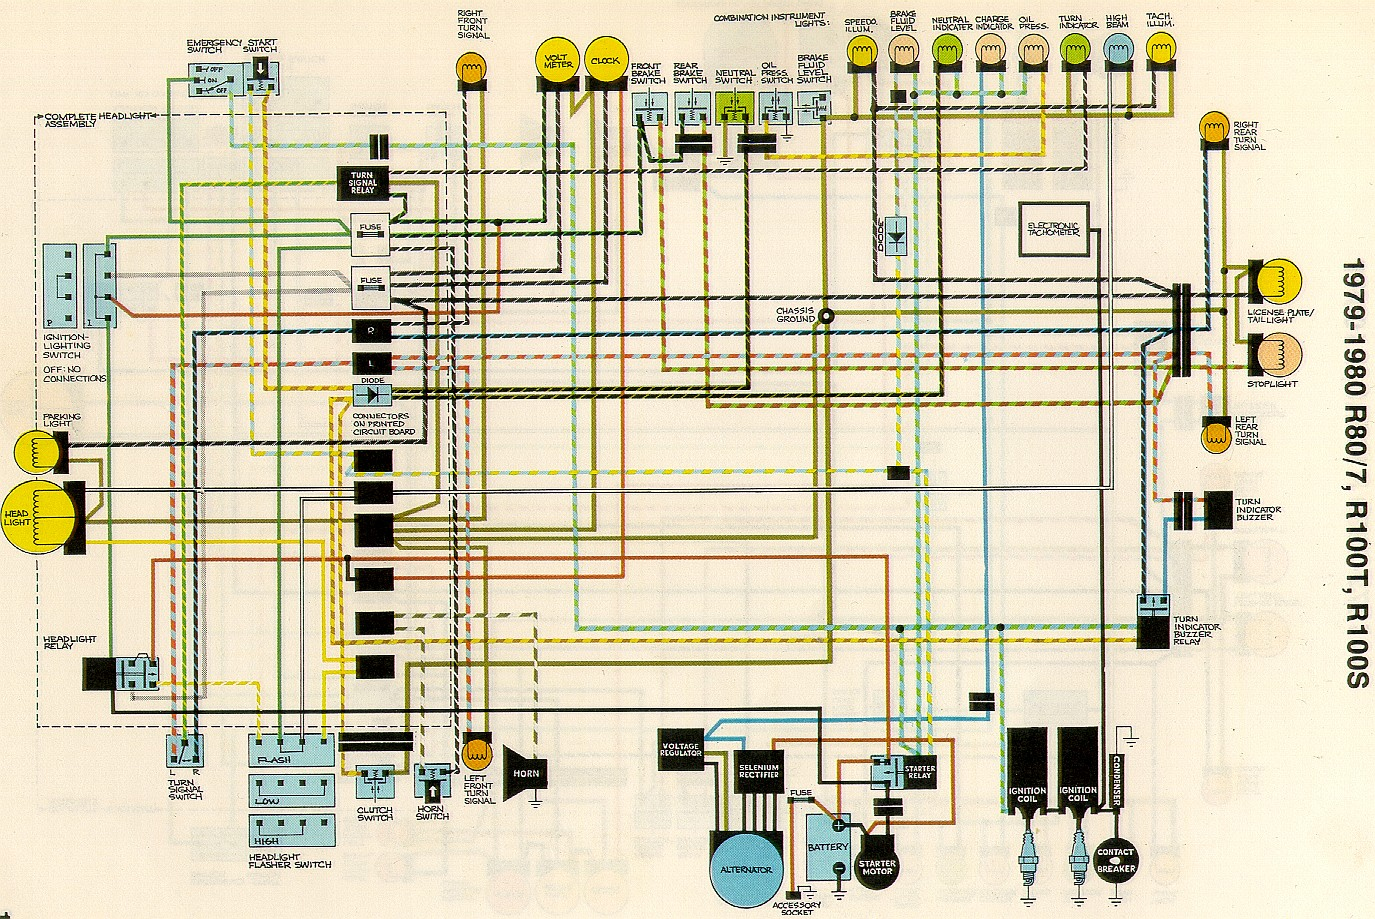 79 5 united articles wiring diagrams bmw r100rs gauge wiring diagram at creativeand.co